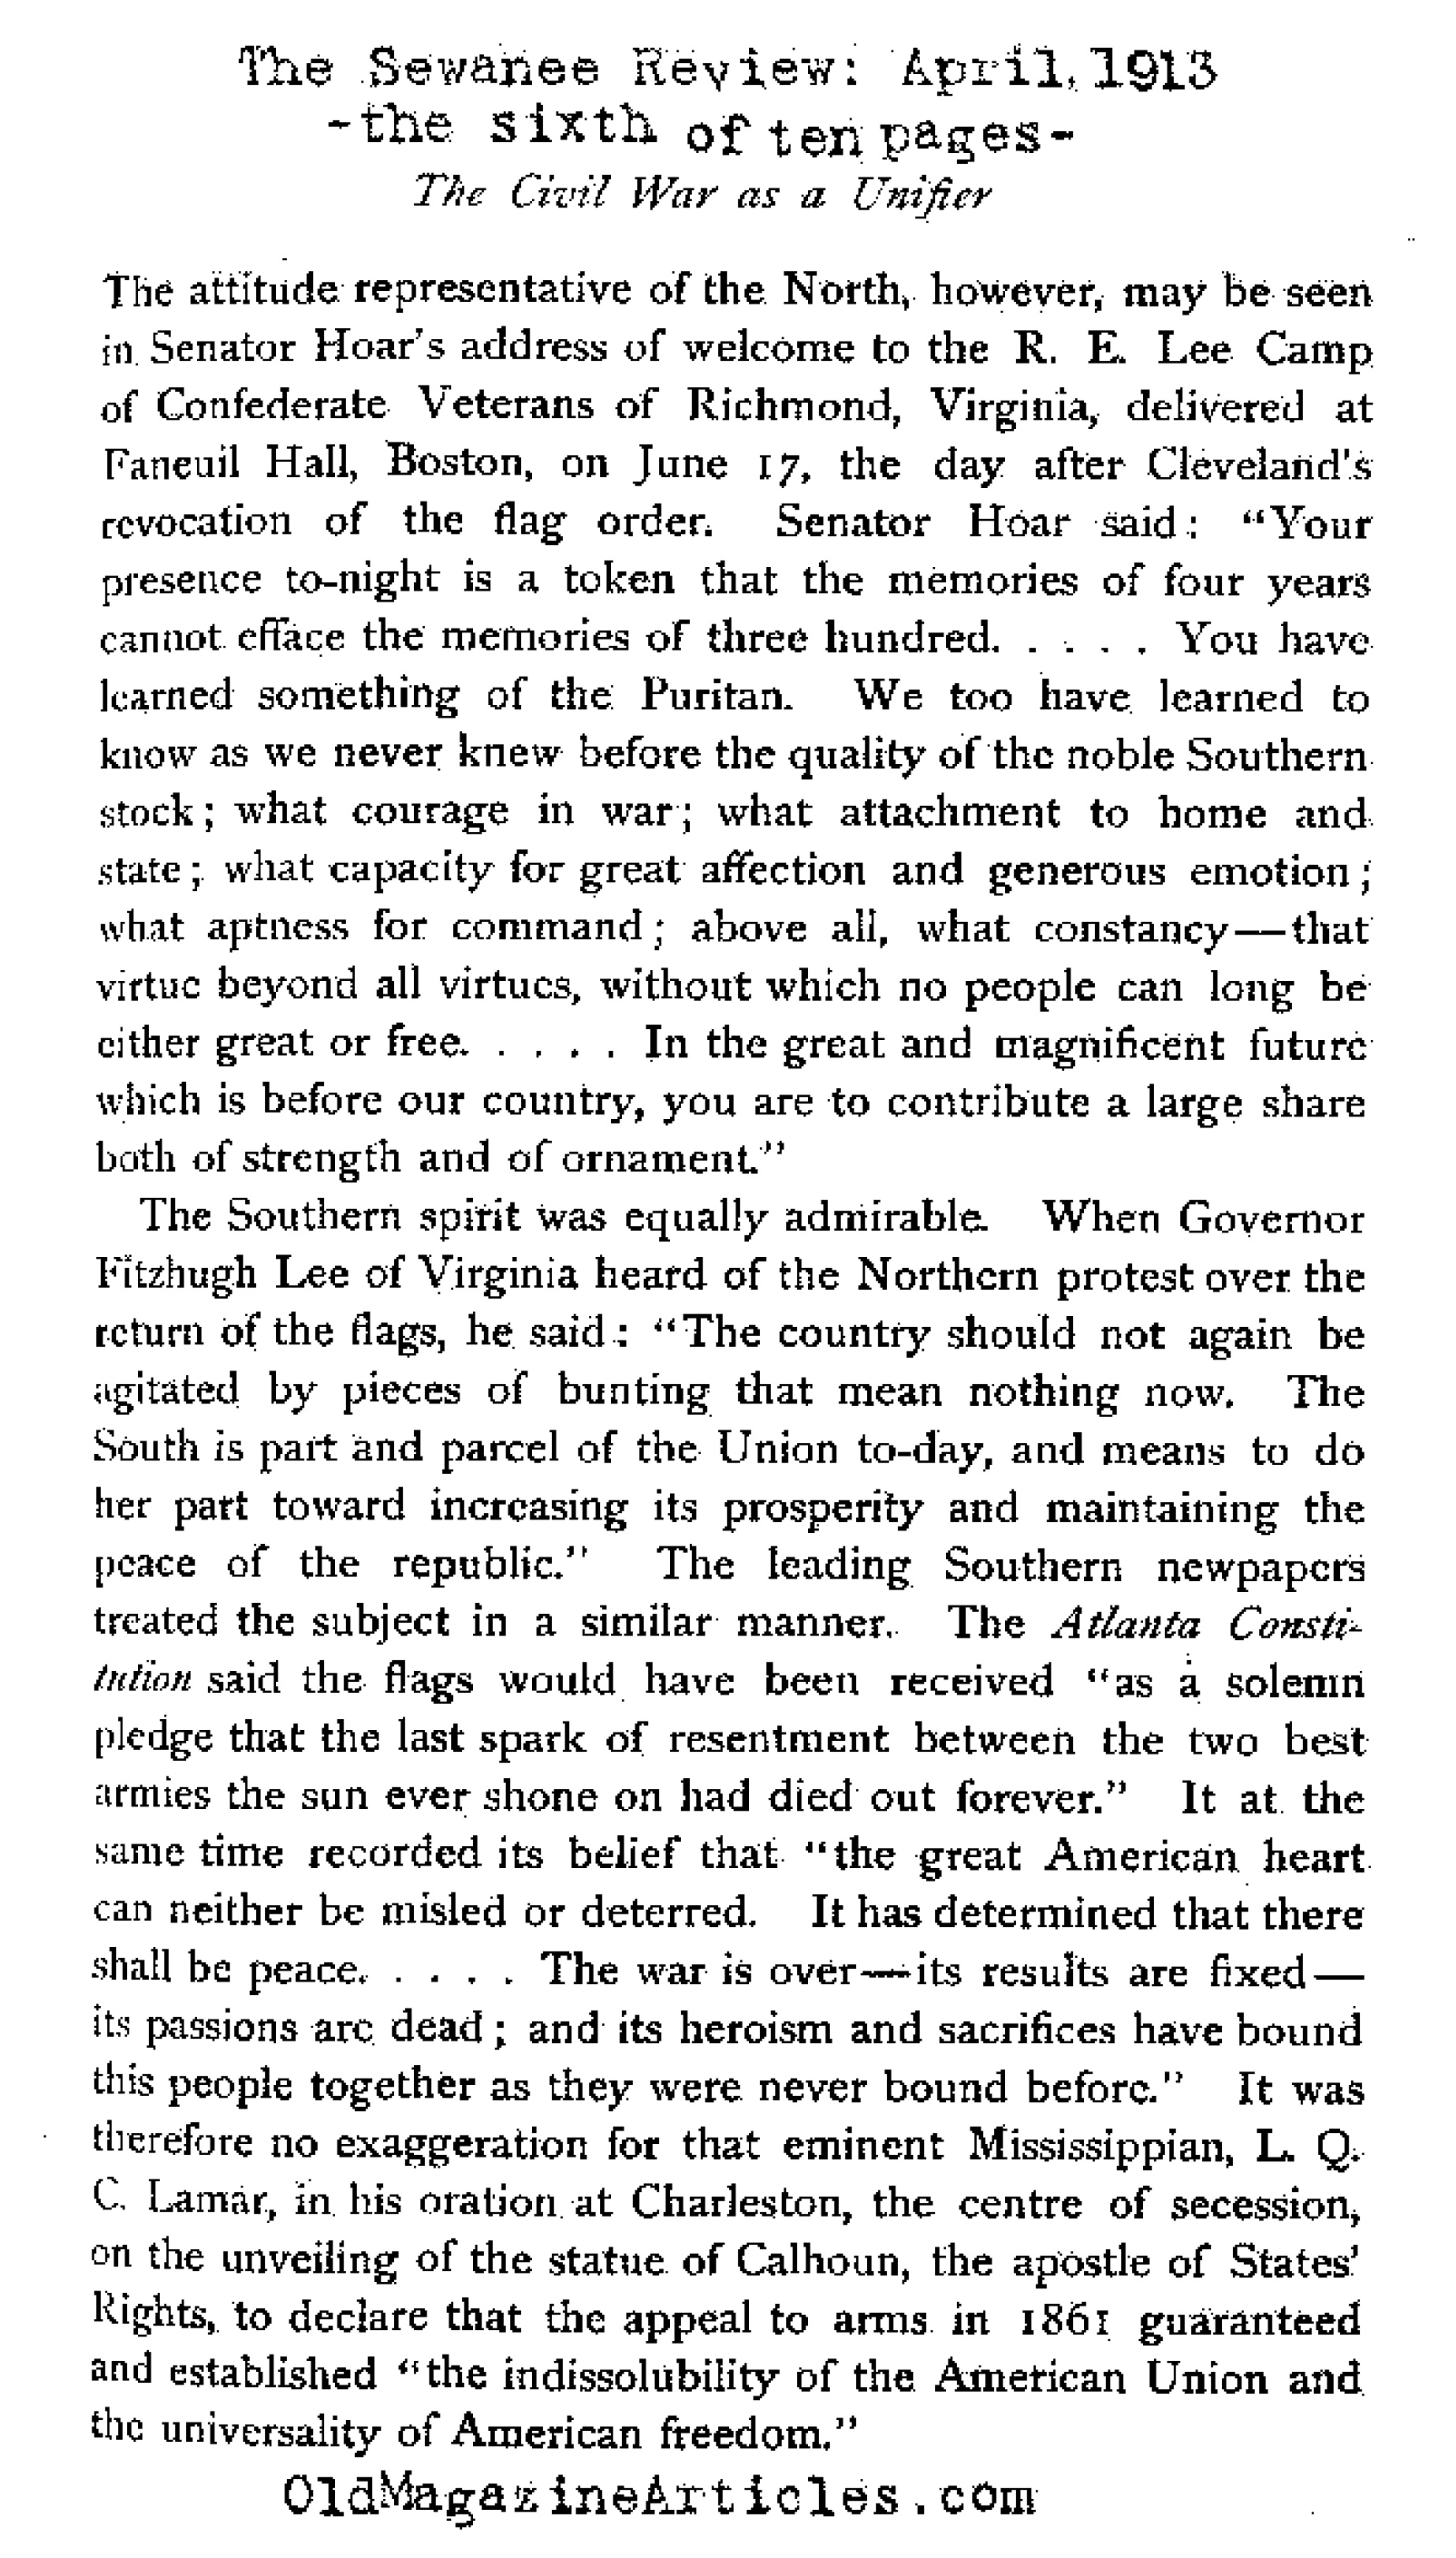 an overview of the changes in the american history brought by the civil war English civil war history influenced new england before the american revolution english history influenced the thinking of american colonials, so that americans in the 1700's repeated the same arguments that englishmen used against king charles i and his use of taxation and an army in the 1600's.